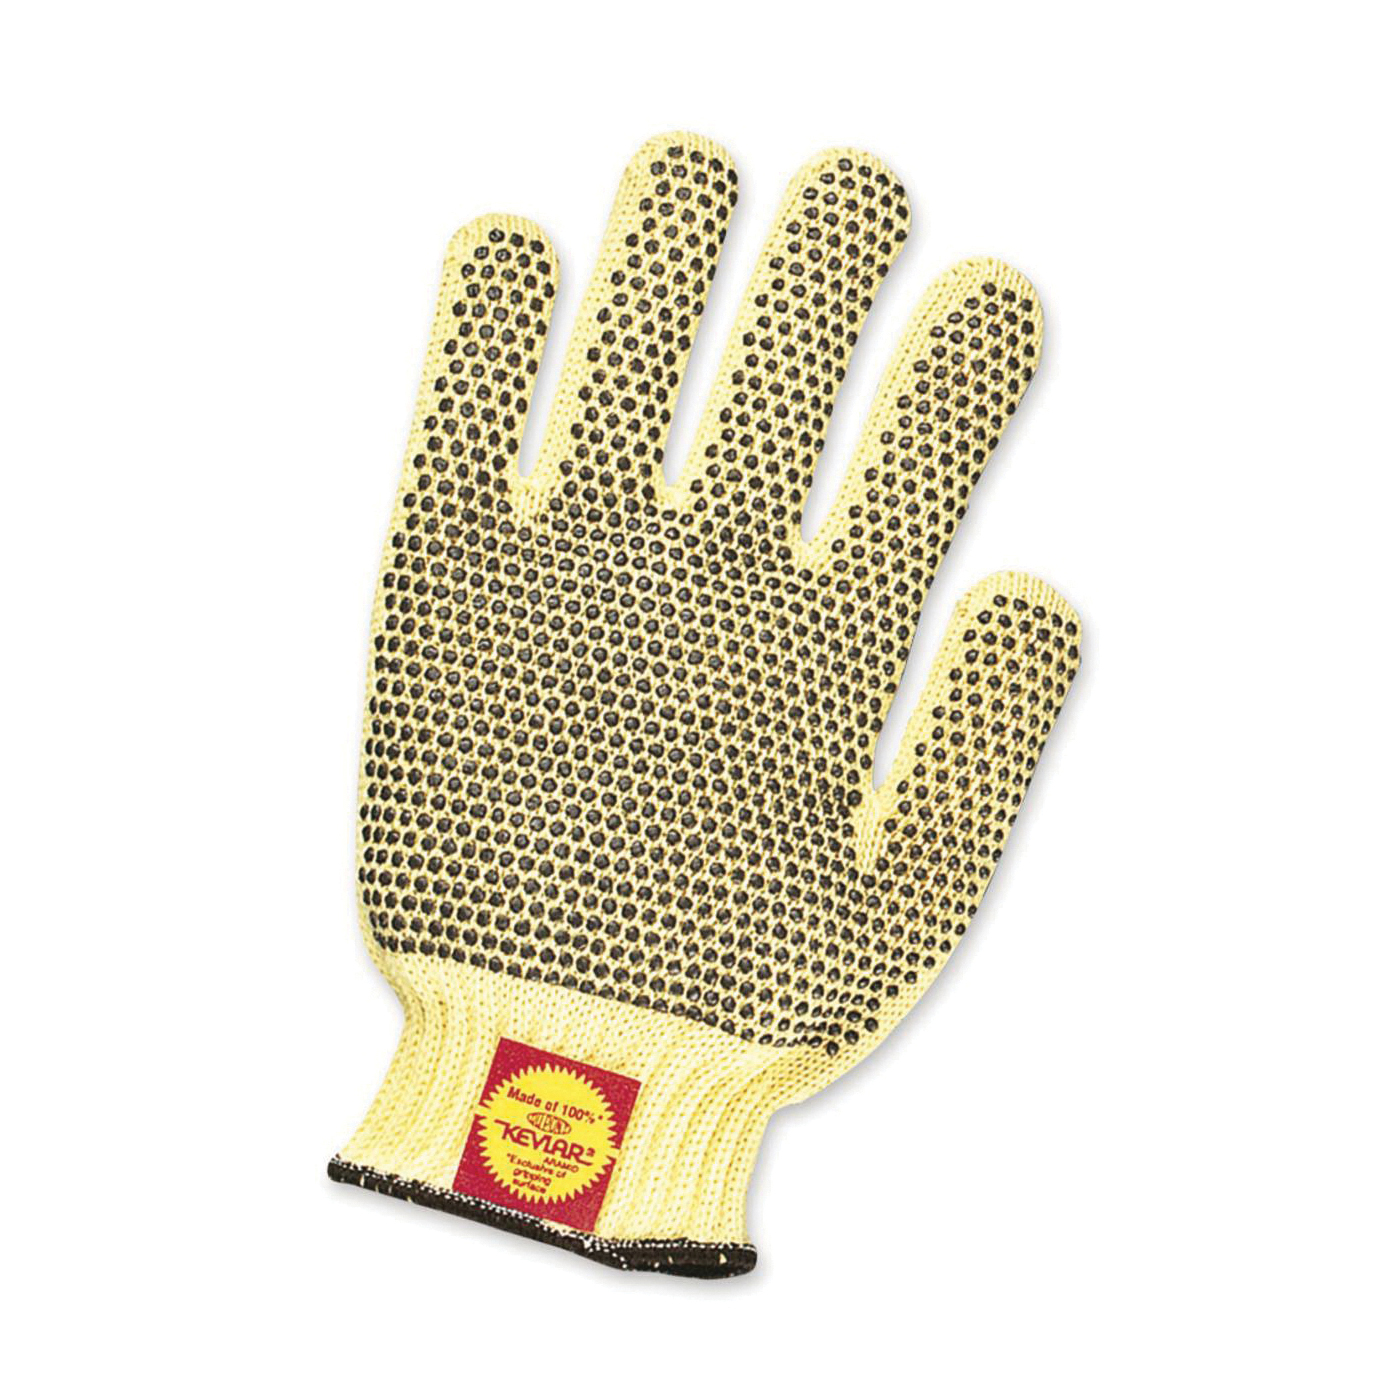 North® by Honeywell KVD18AR-100 Tuff-Knit Extra KVD18AR Men's General Purpose Gloves, L, PVC Dotted Palm, Aramid Fiber/Kevlar®, Brown/Yellow, Knit Wrist Cuff, PVC Dots Coating, Resists: Abrasion, Cut, Puncture and Tear, Unlined Lining